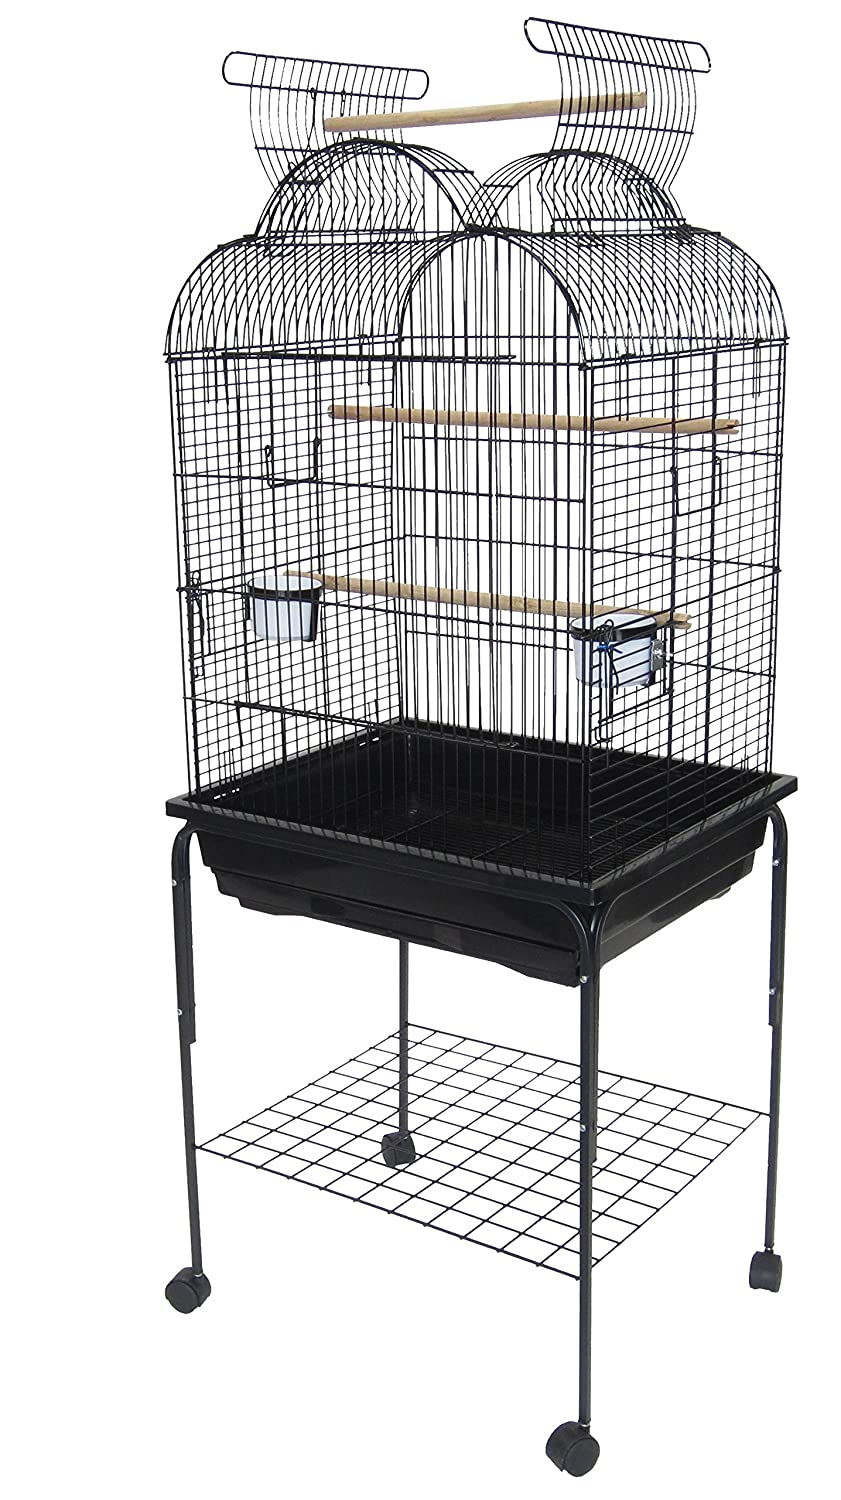 YML Shell Top Parrot Cage, 5 by 8-Inch, White 7904_4194WHT